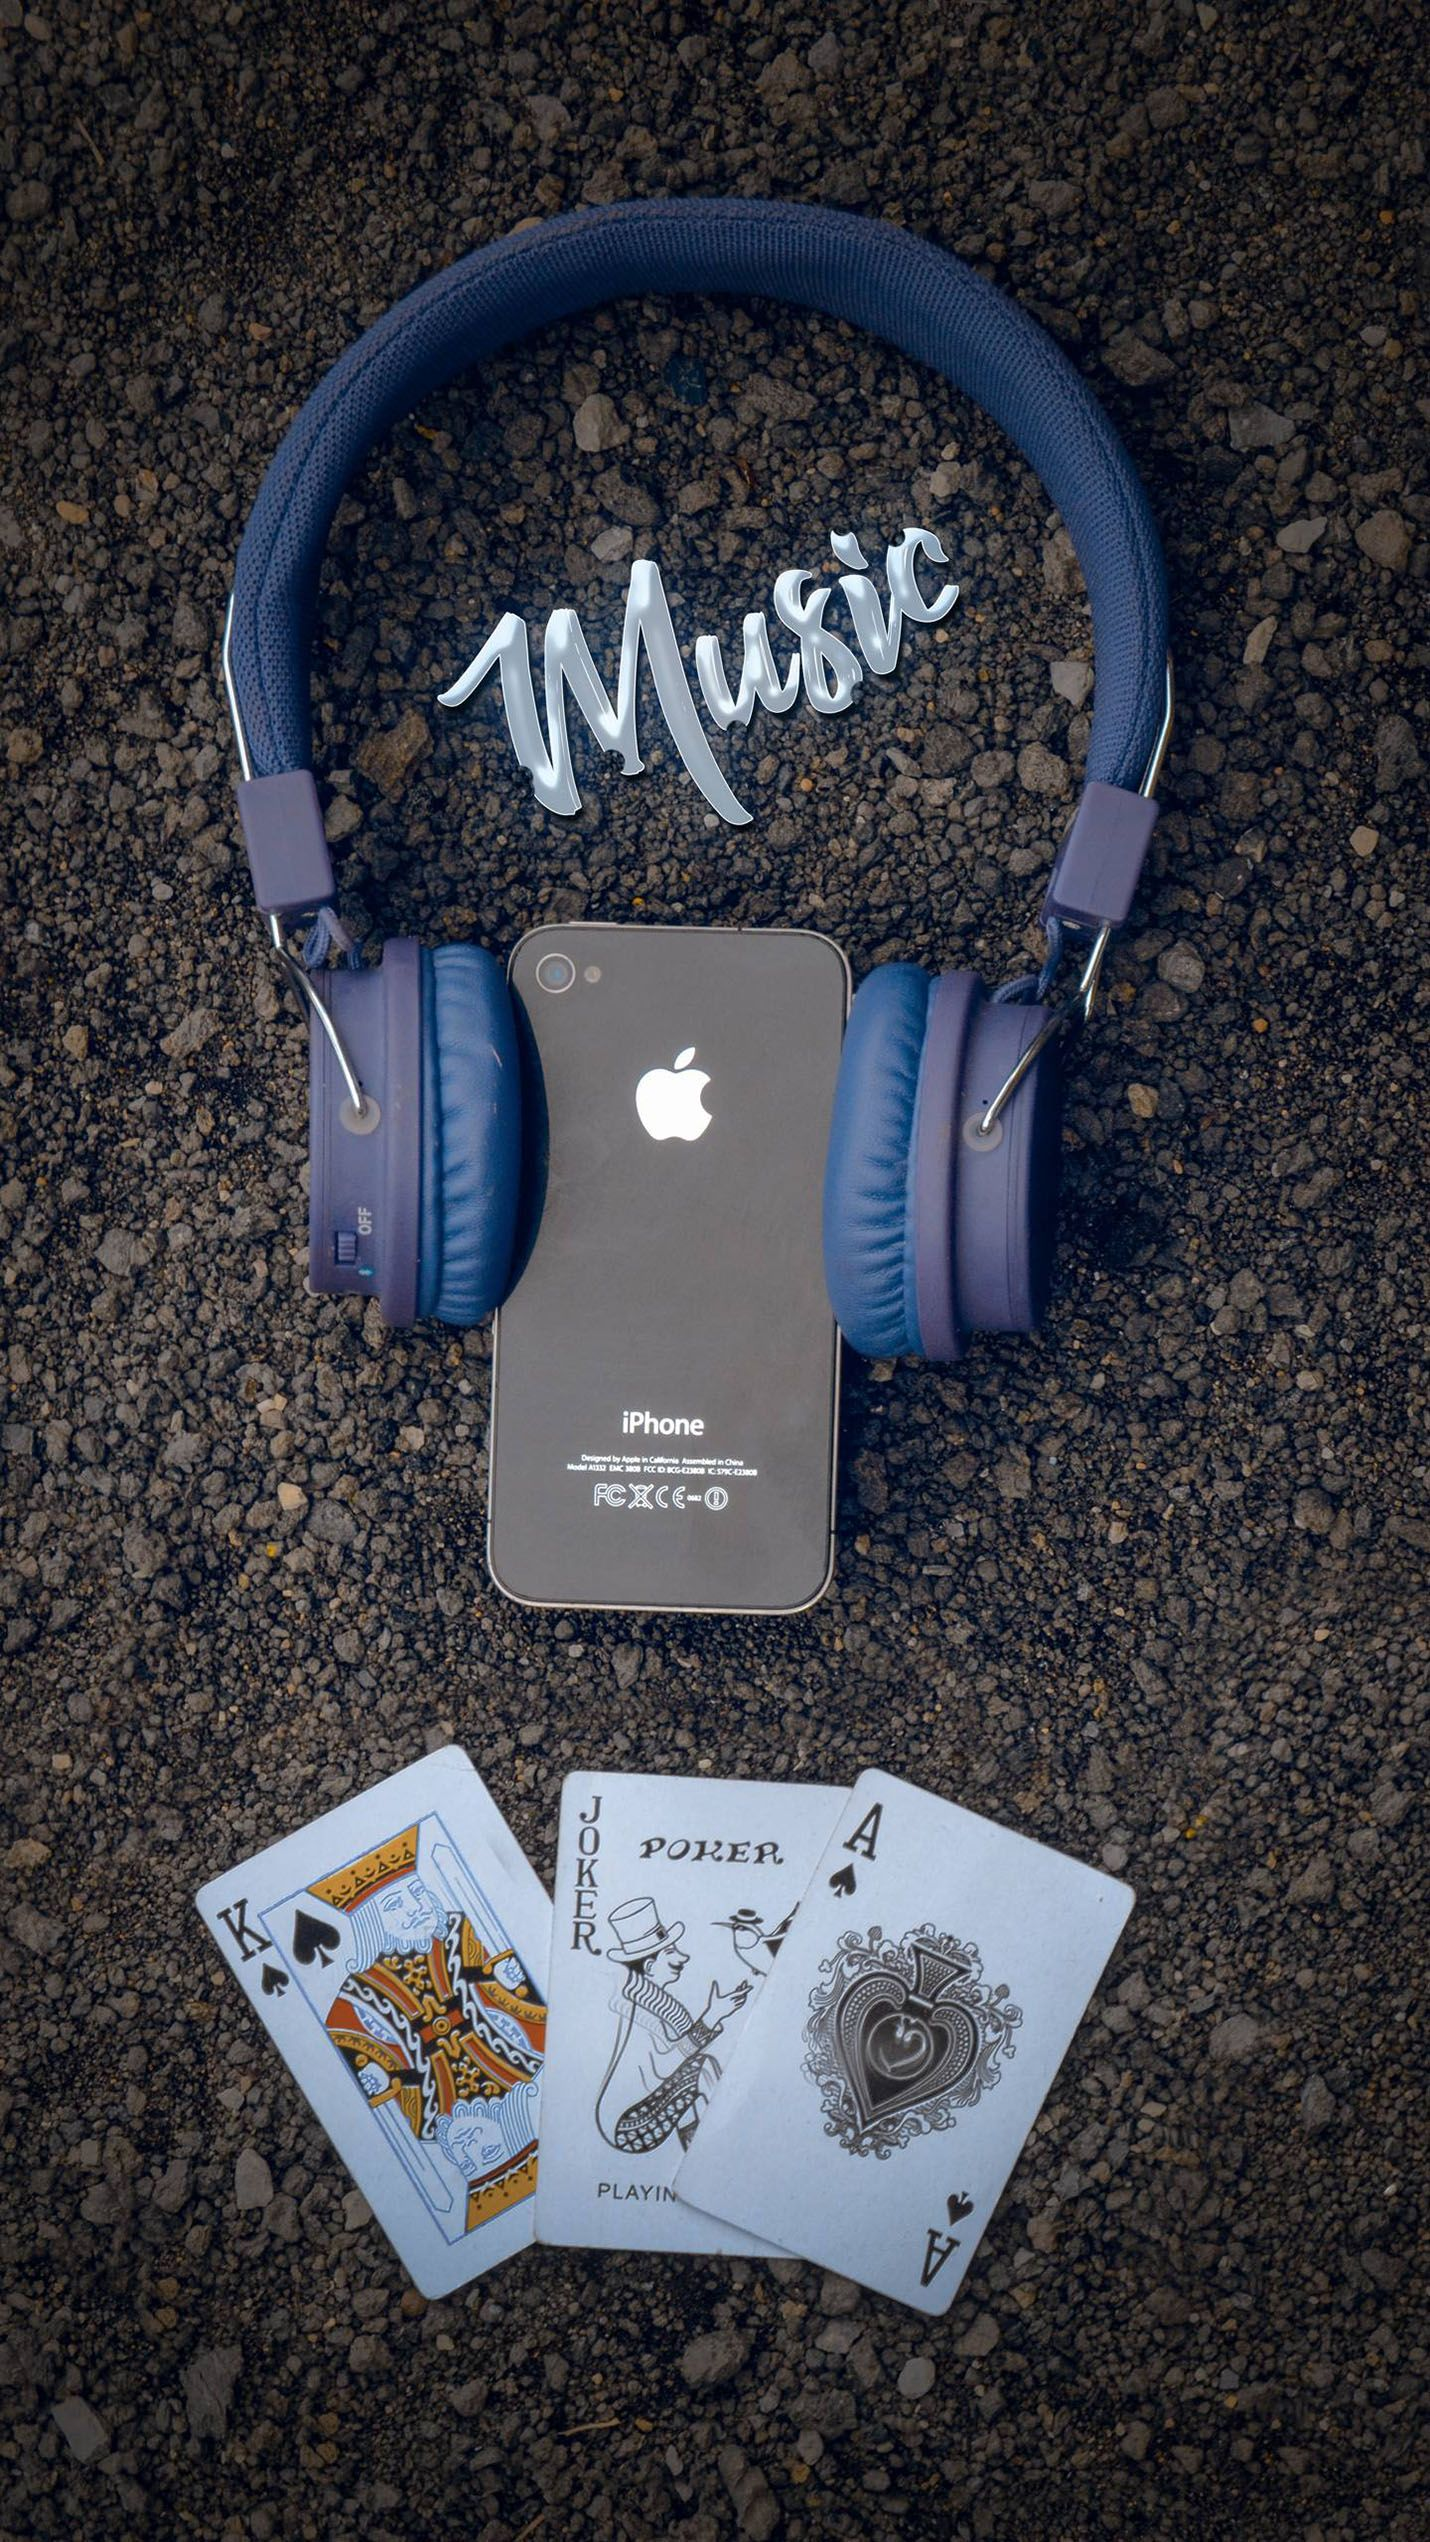 Music Hd Wallpaper Download Hd in Link Iphone wallpaper